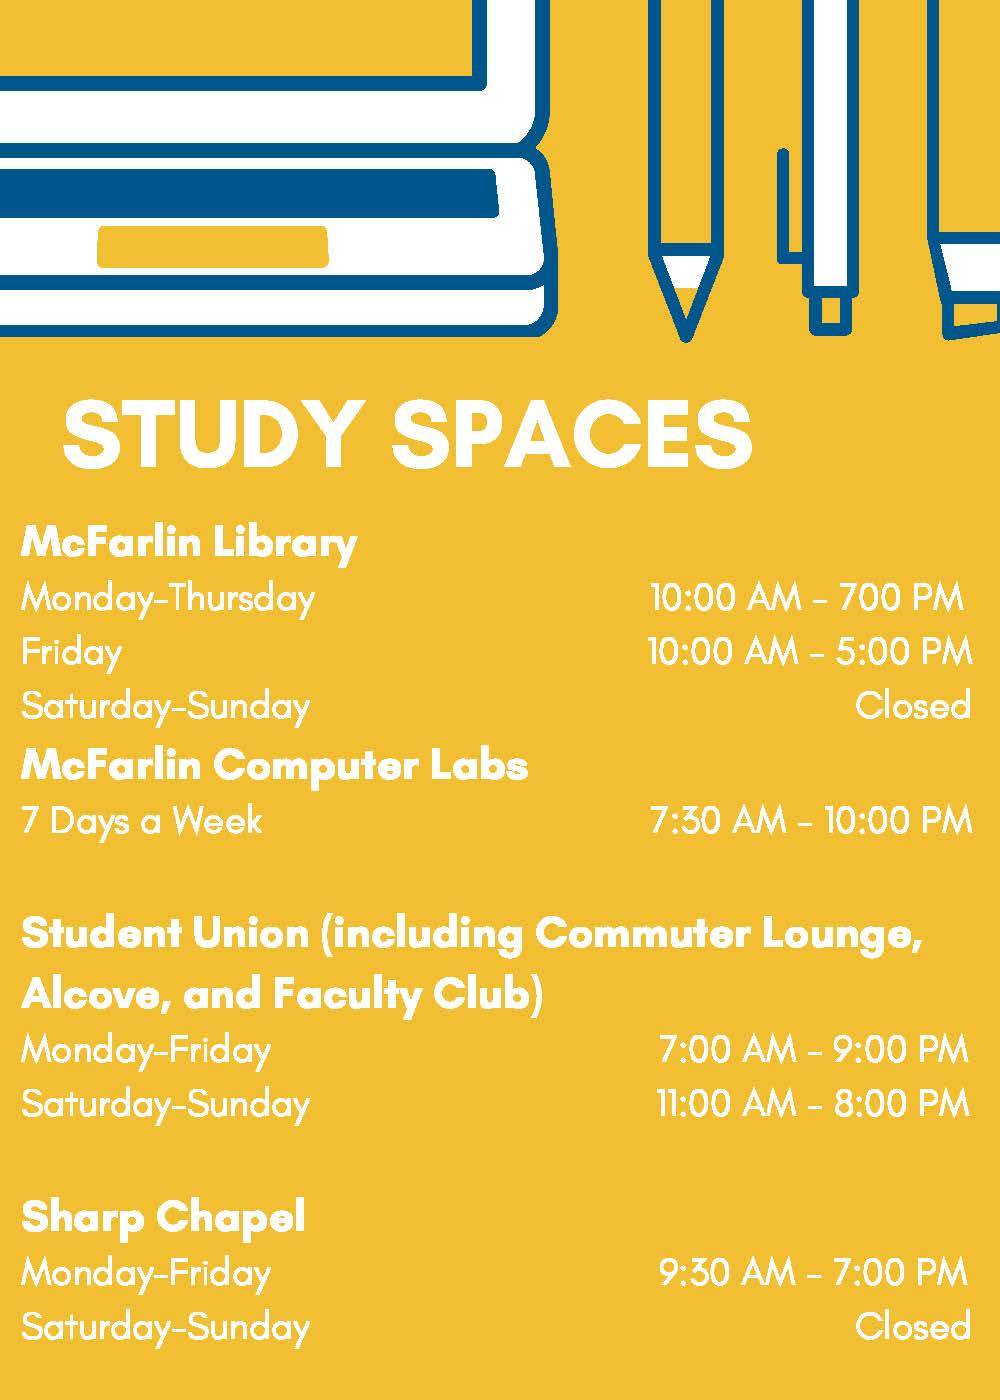 Study spaces on campus